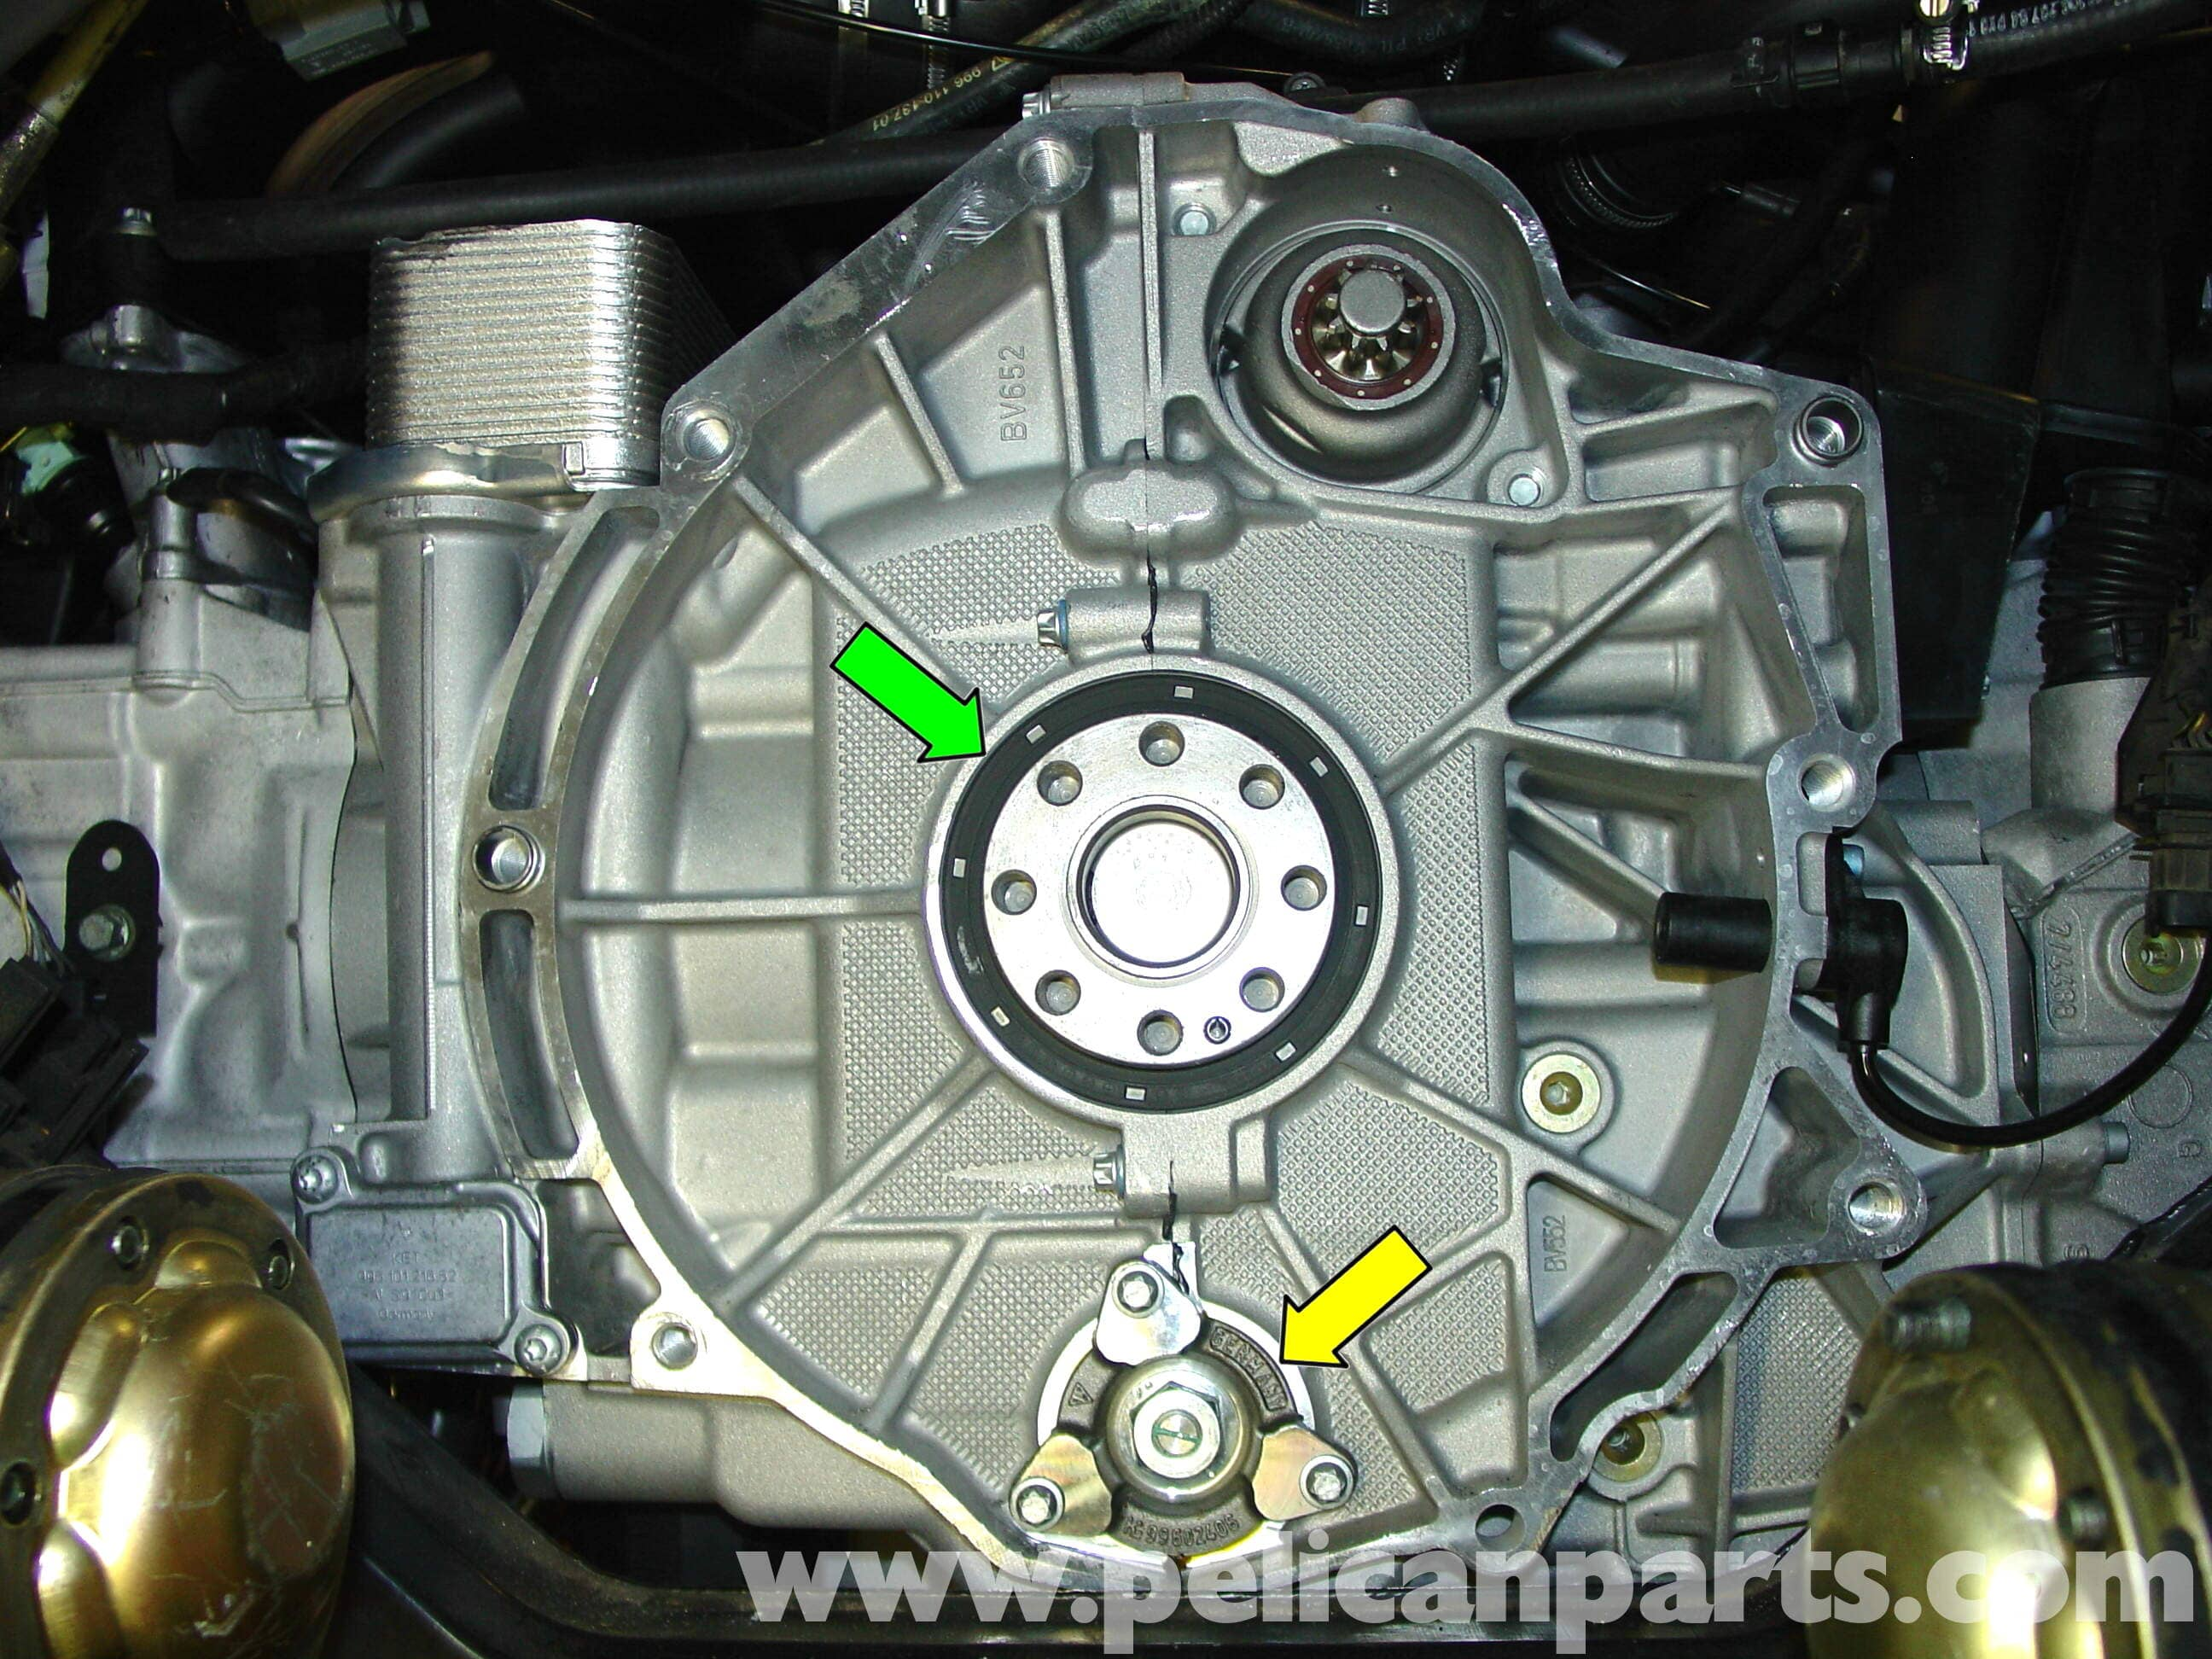 Porsche 911 Carrera Common Engine Problems 996 1998